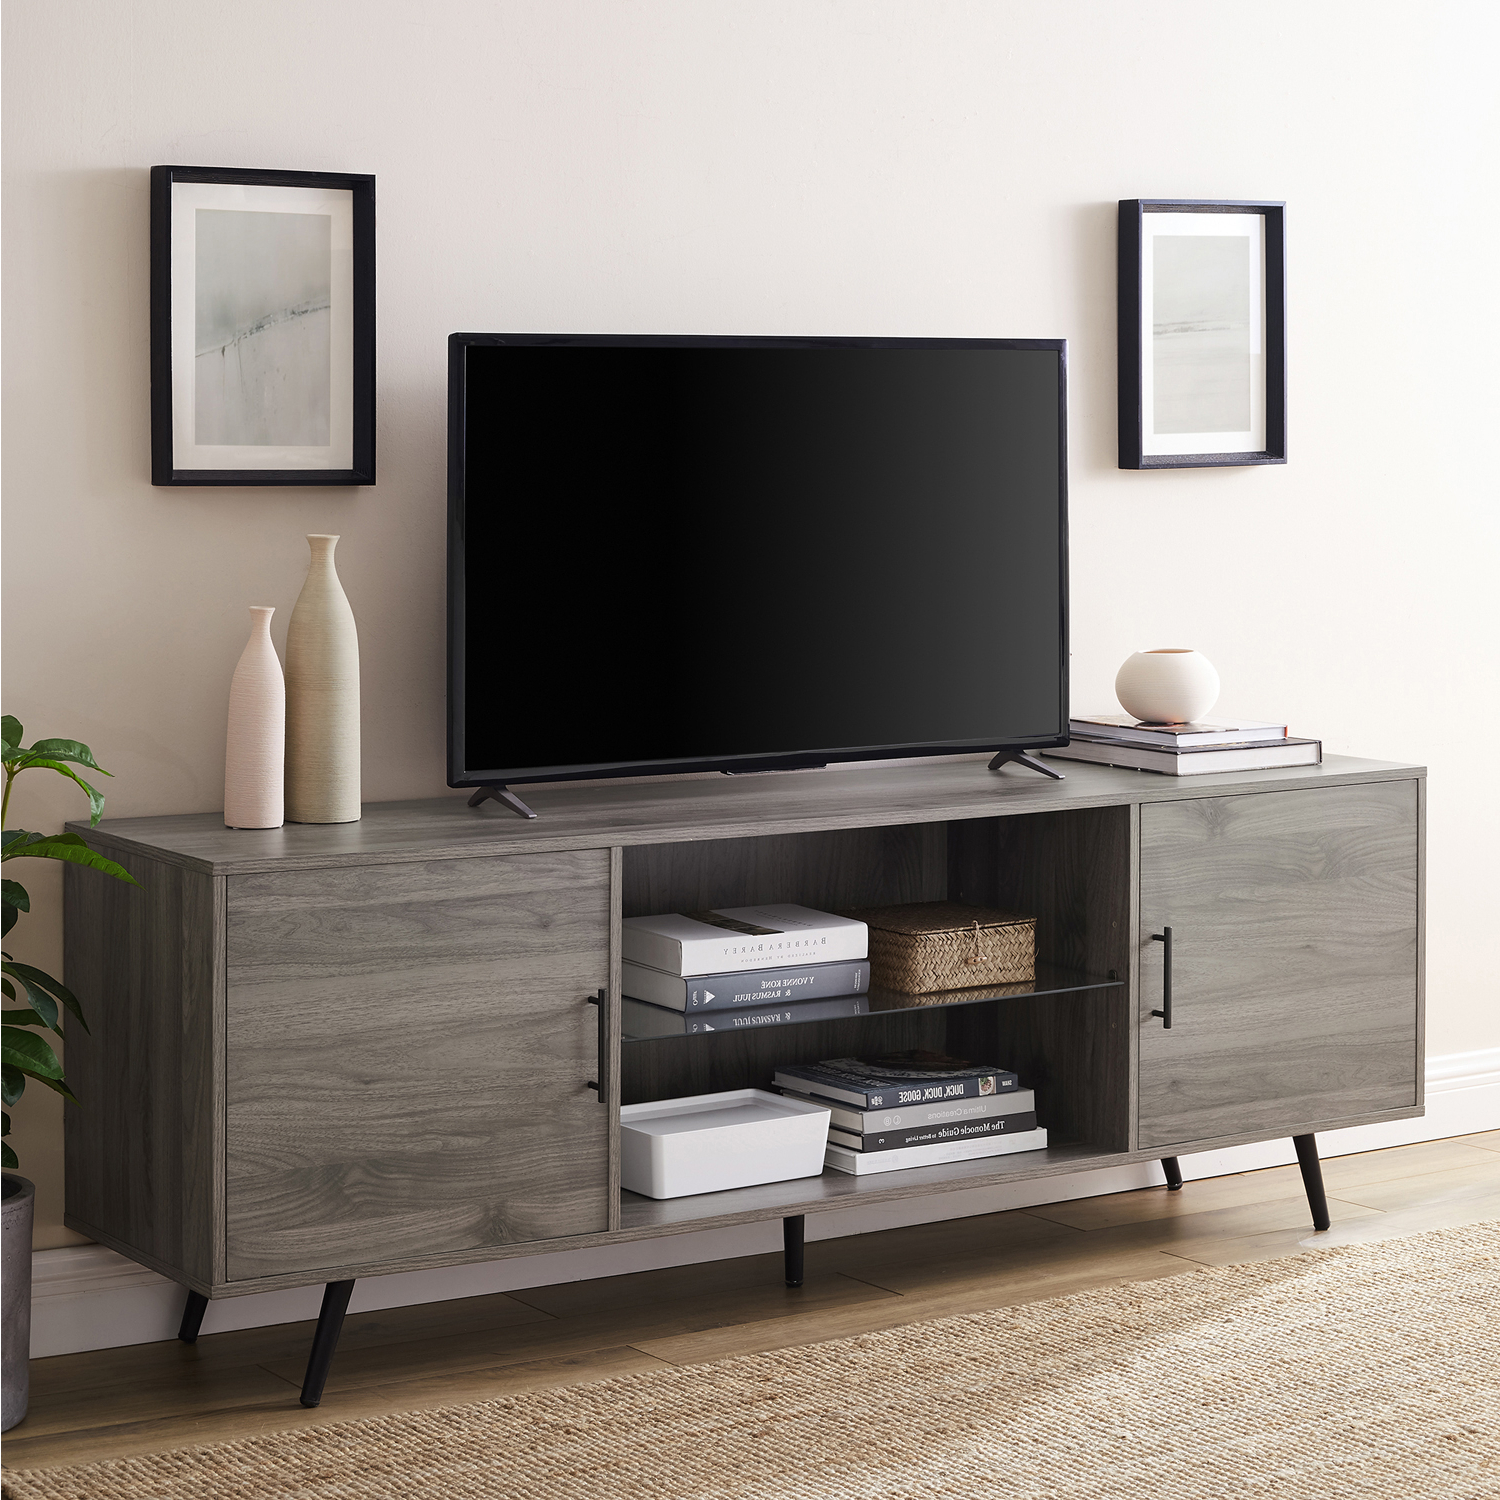 Wide Tv Stand With Glass Shelf – Pier1 In Orsen Wide Tv Stands (View 1 of 20)